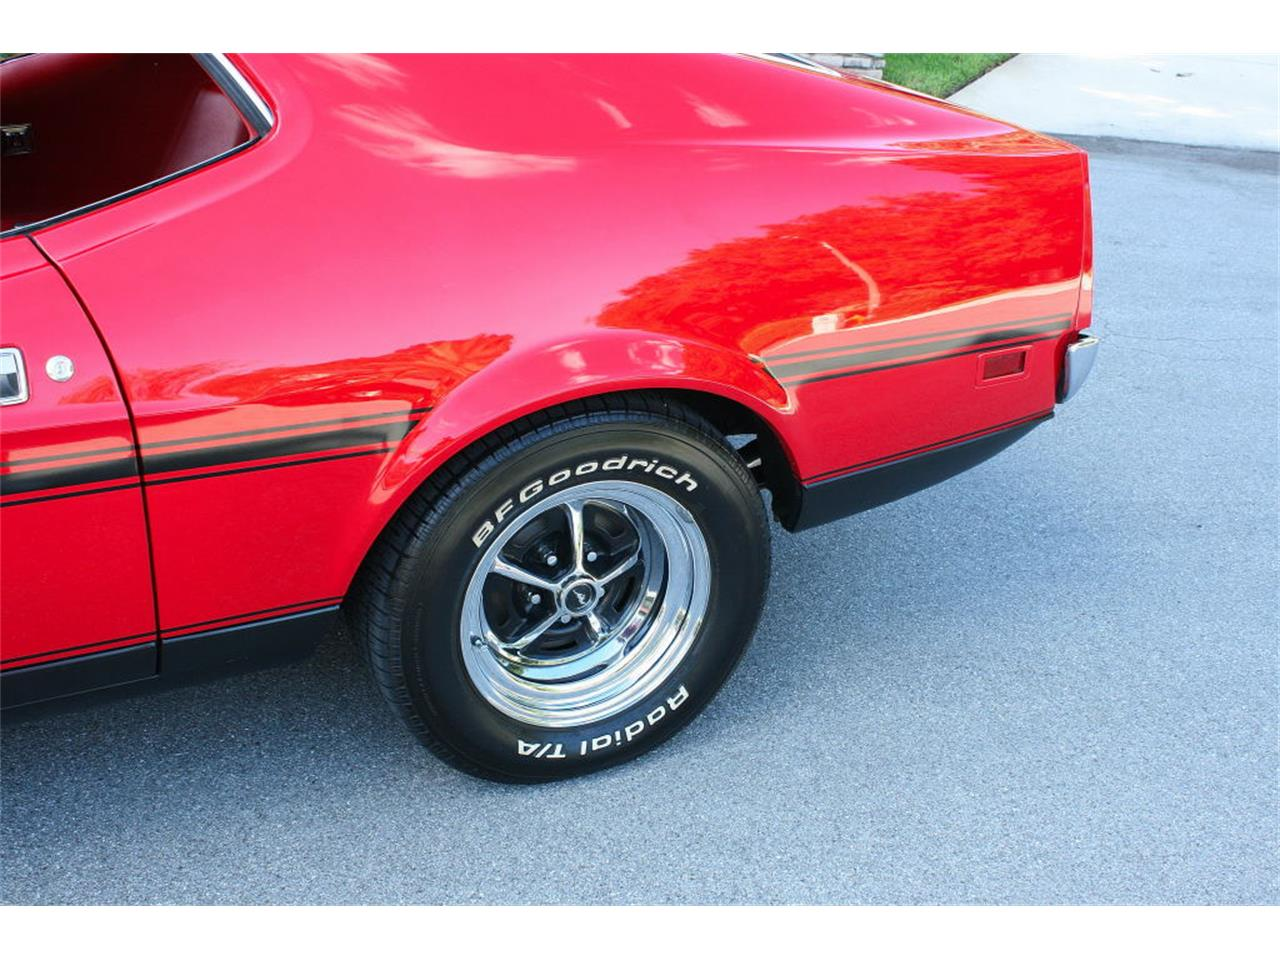 Large Picture of '72 Mustang located in Florida - $39,500.00 Offered by MJC Classic Cars - MGWW